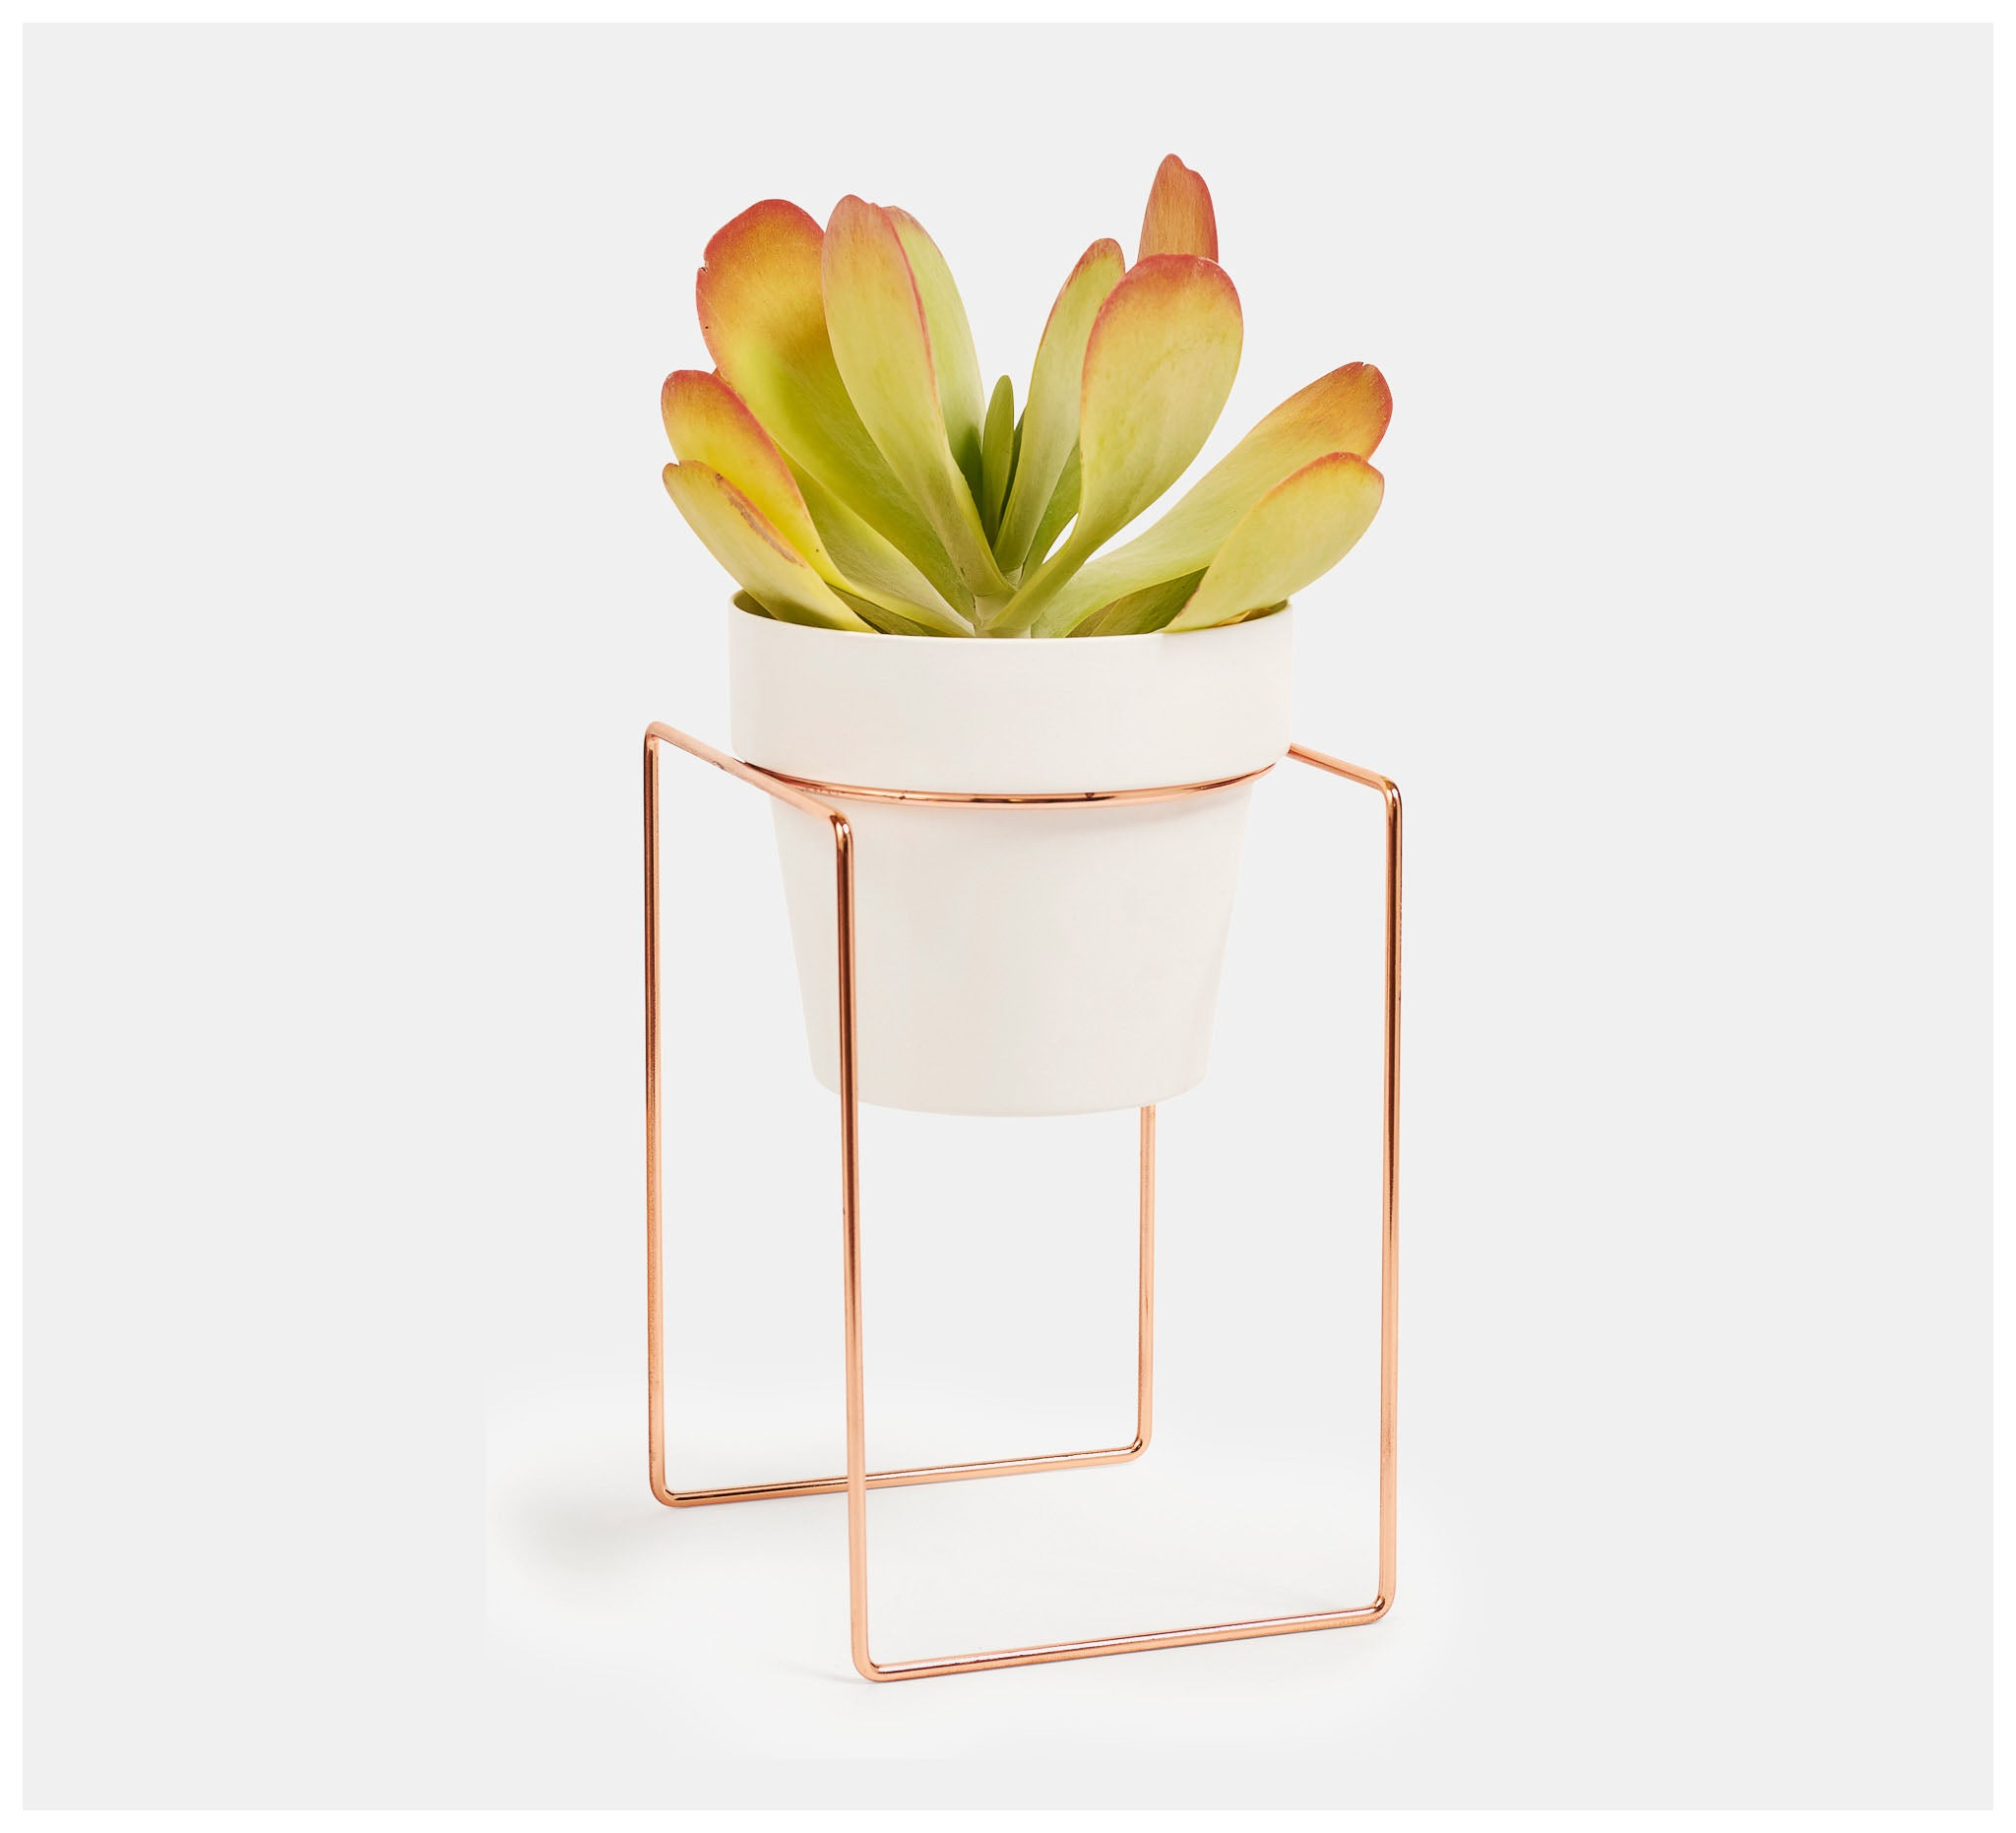 Bendo - Shrub Bundle Plant Stand & Mini Pot - Black, White or Copper